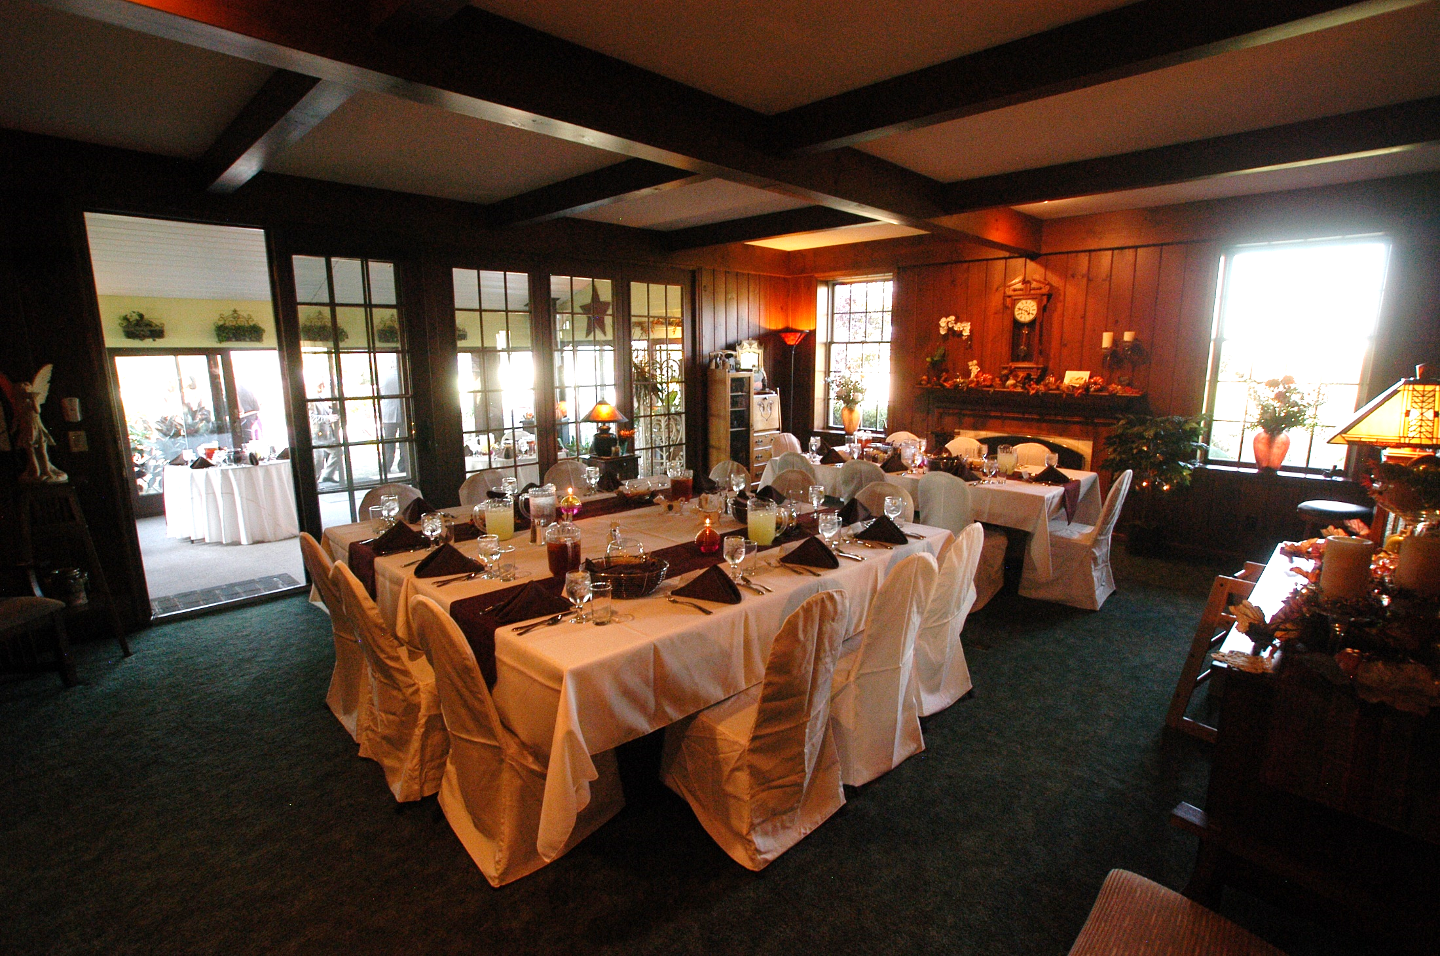 Annville Inn's Main Dining Room reset to host wedding party for luncheon.